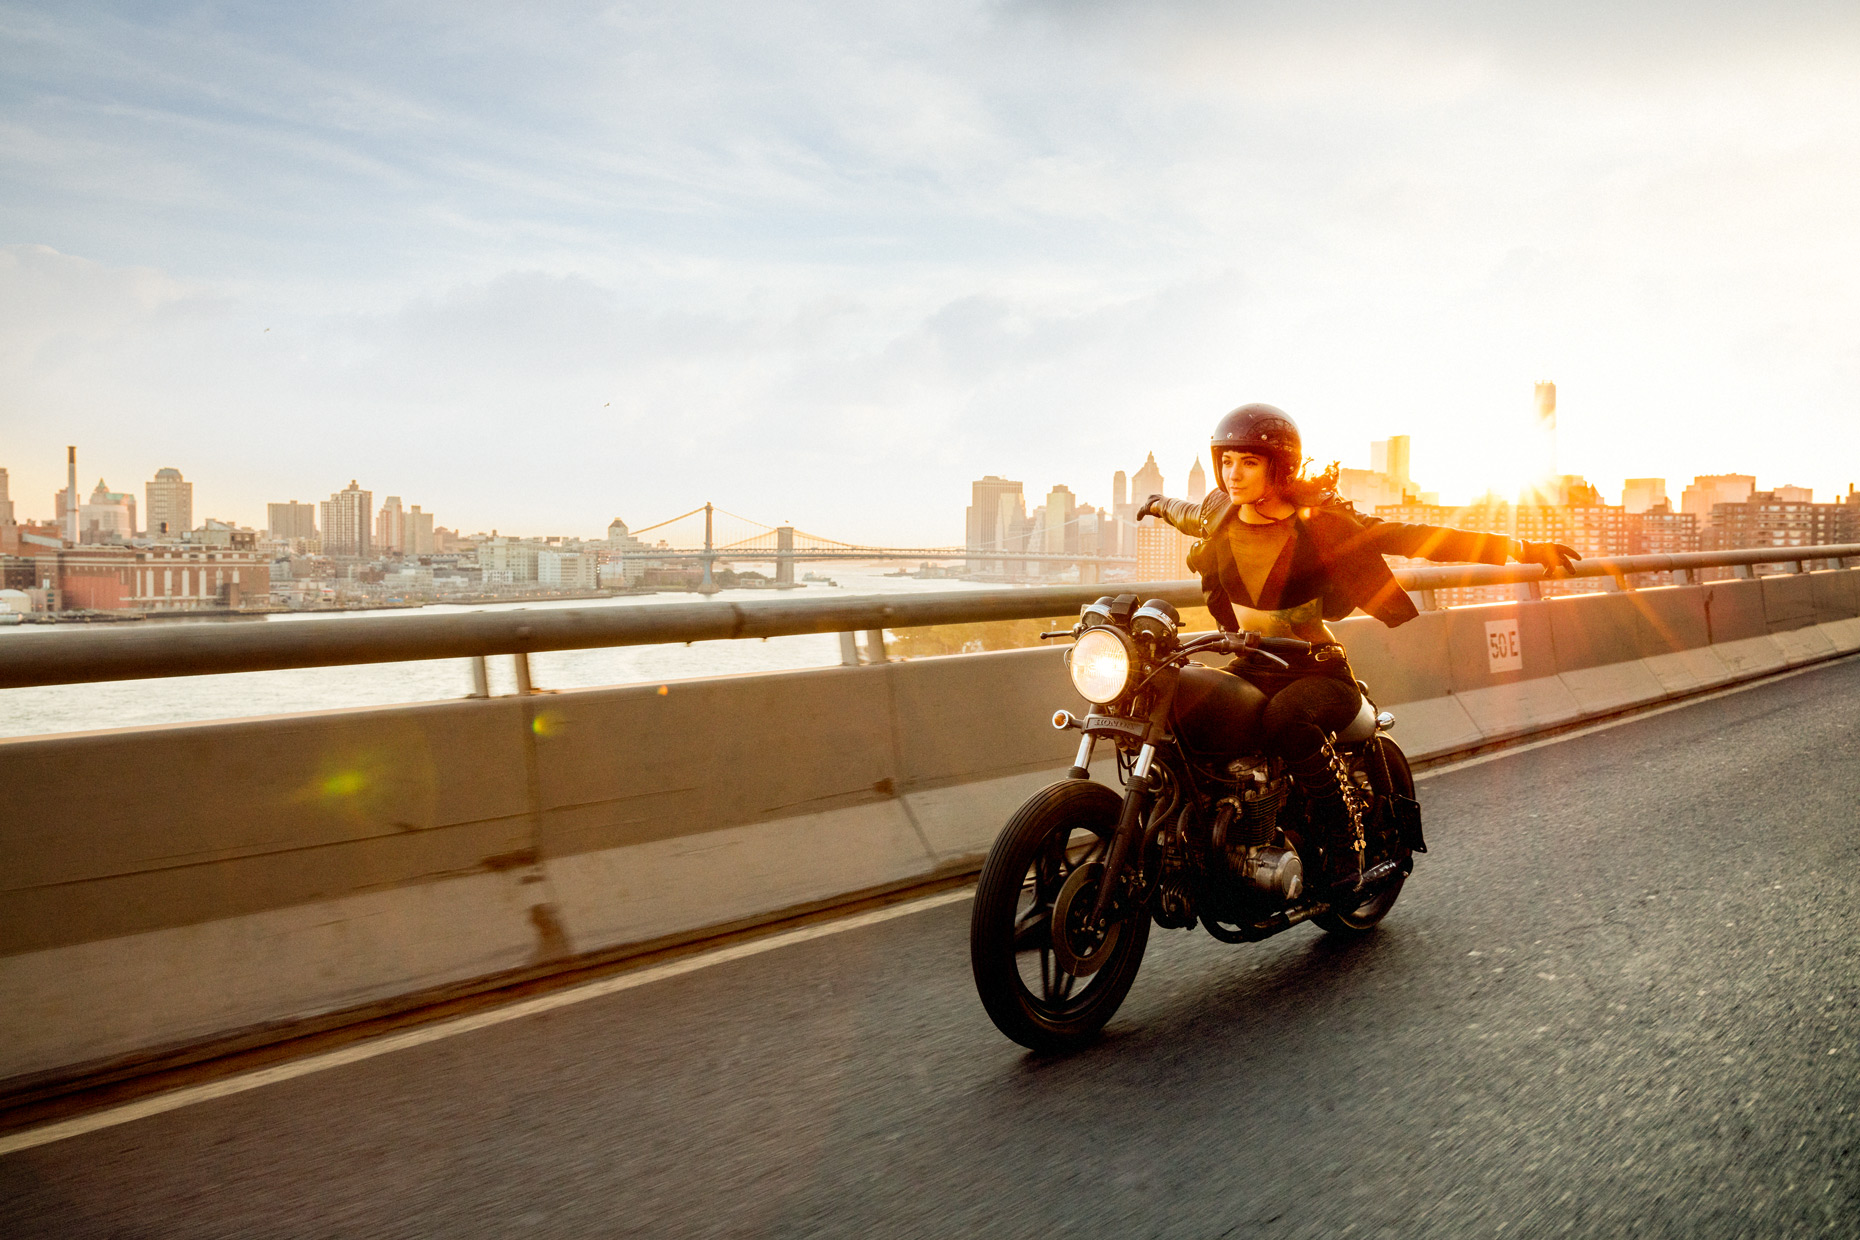 150918_PS035_Williamsburg-Bridge-Motorcycle_JDuarte_0615